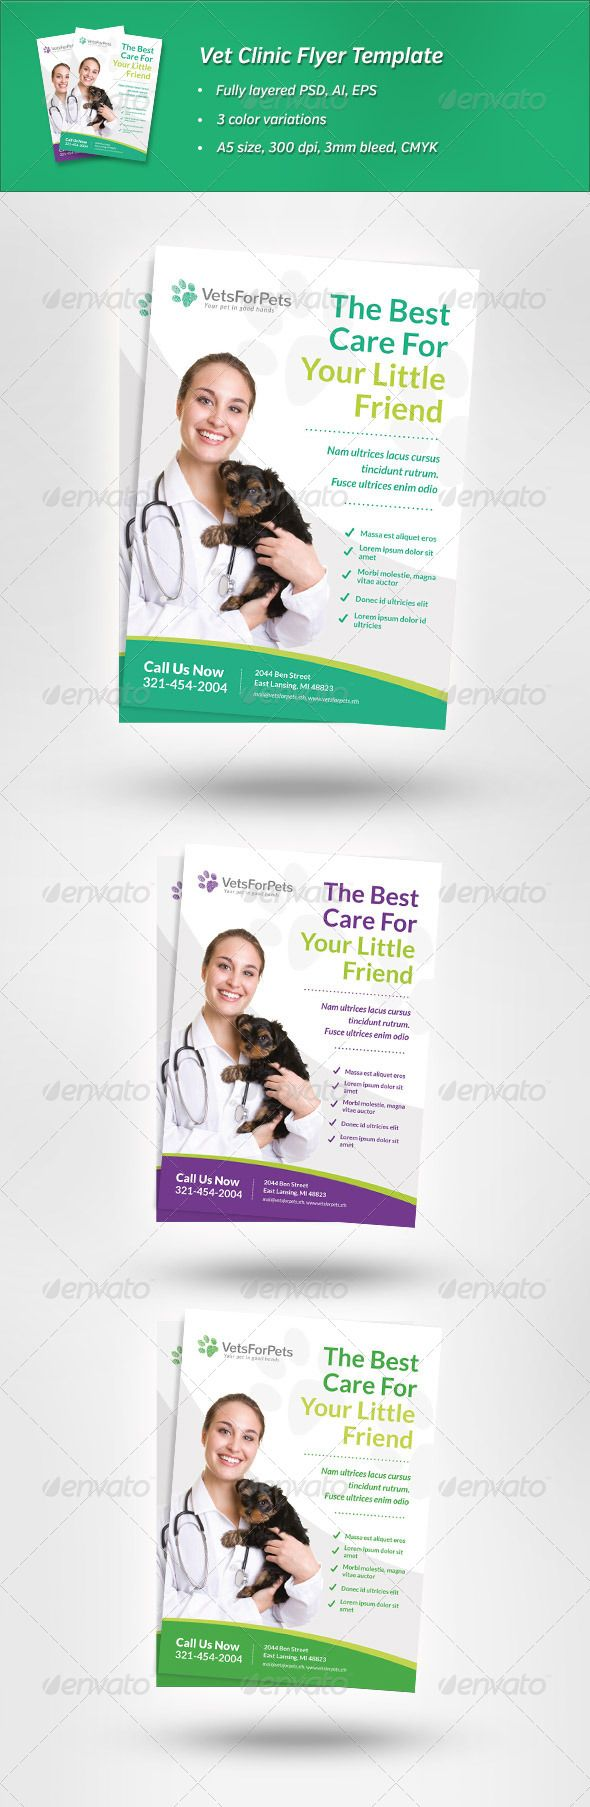 vet clinic flyer template google fonts fonts and pets buy vet clinic flyer template by graphicgoods on graphicriver clean and modern flyer to promote veterinarian clinic animal hospital pet care services or